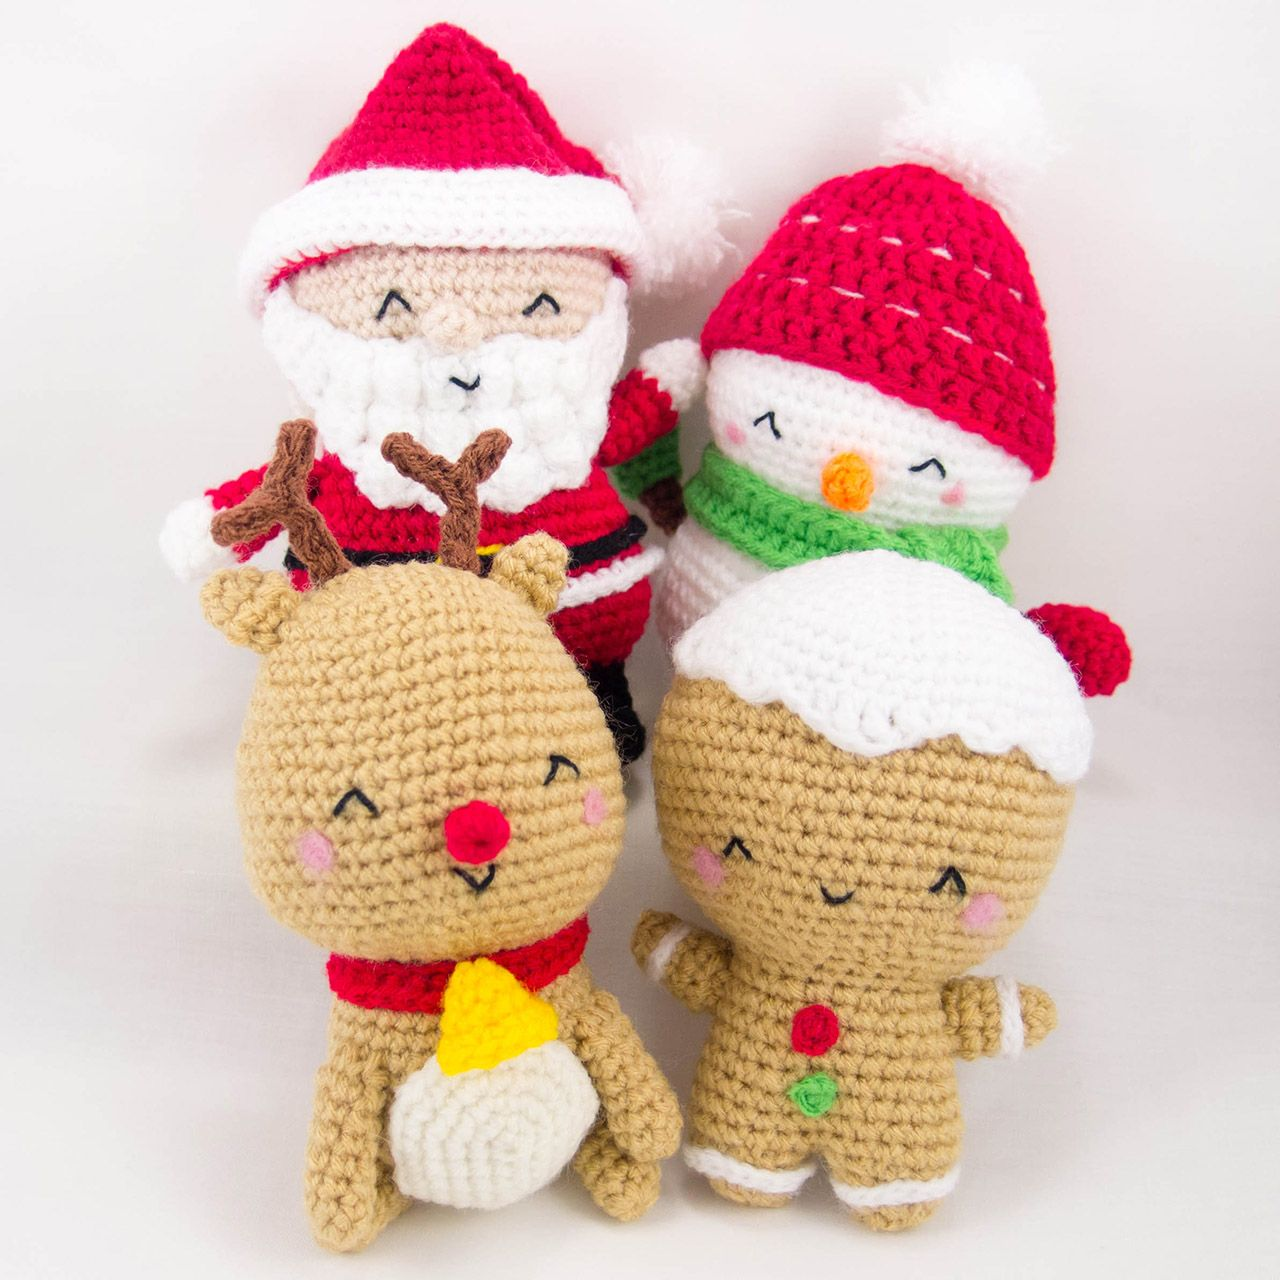 Christmas set patterns snacksies handicraft corner crochet christmas amigurumi crochet pattern pdf by snacksieshandicraft bankloansurffo Image collections